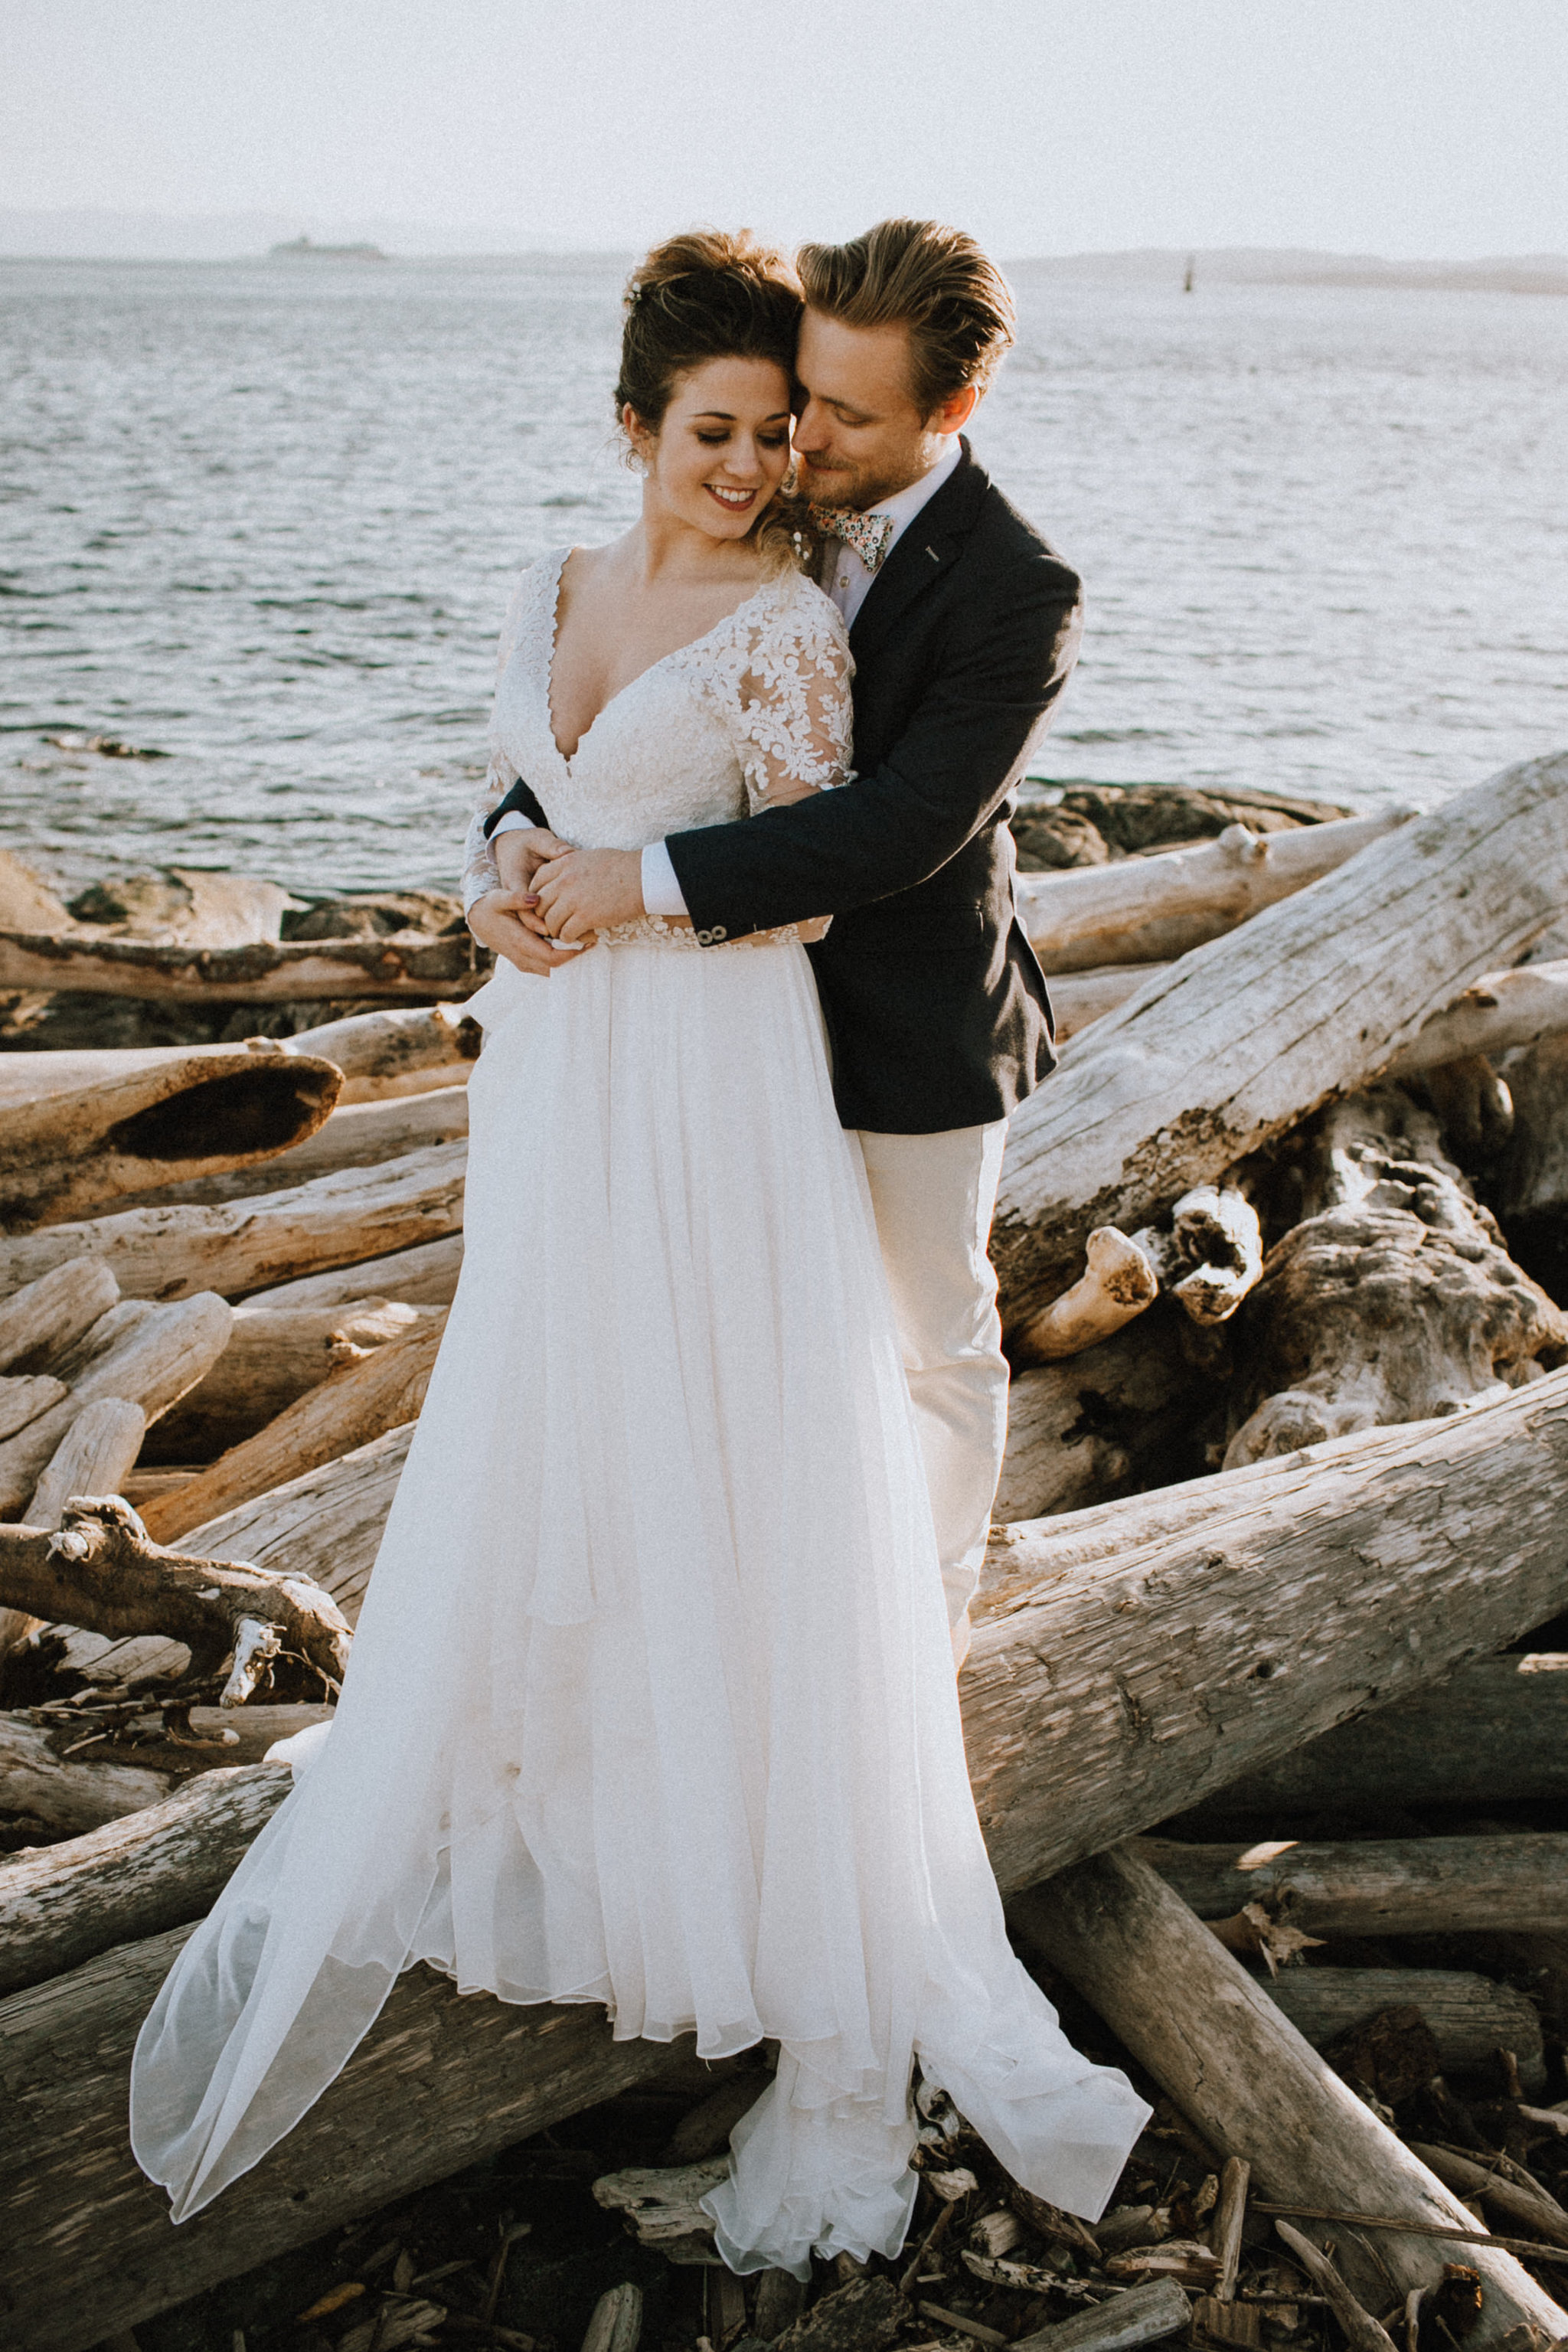 Beach Bridal Session with Wedding Couple on Beach with Driftwood Vancouver Island